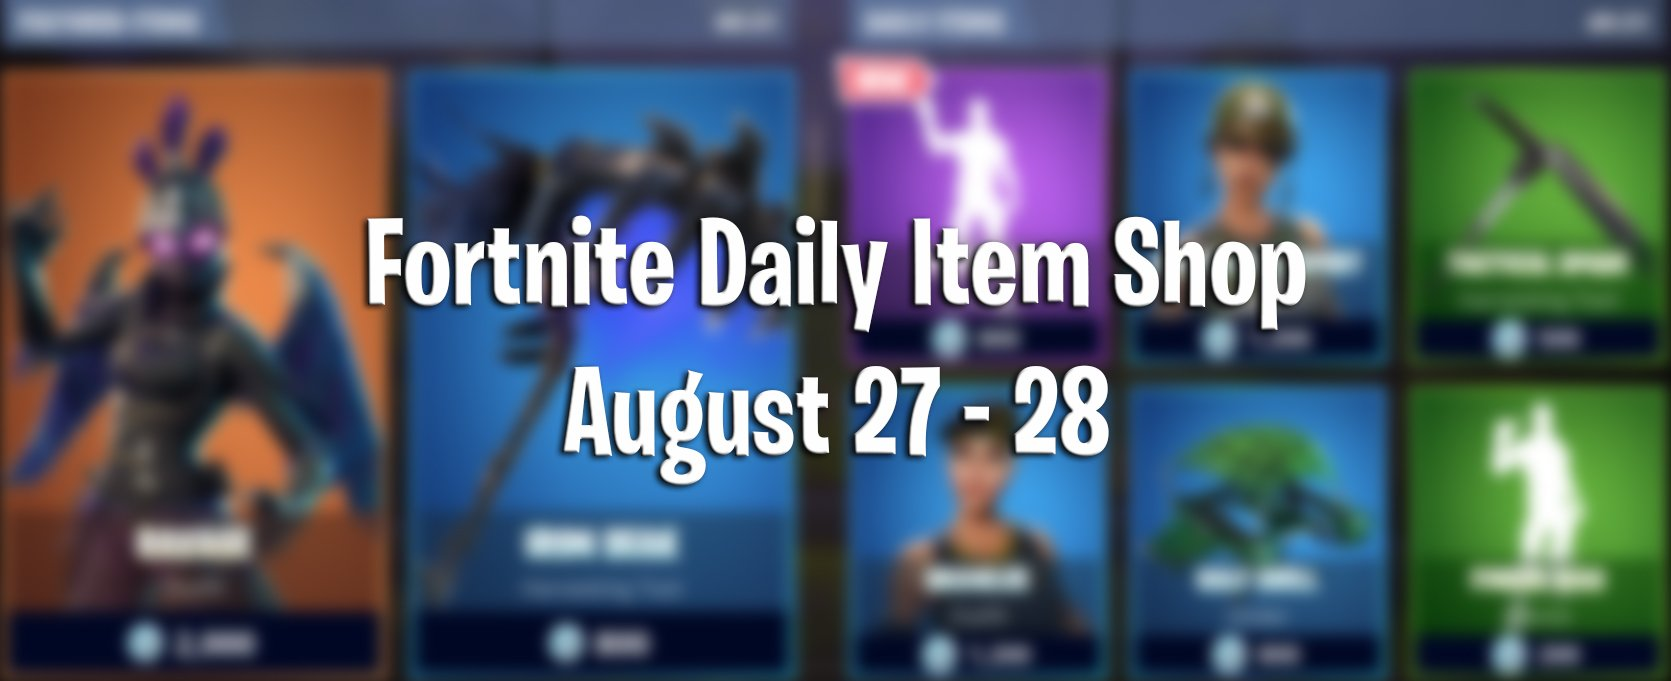 Fortnite Daily Item Shop And Items For Today August 27th To The 28th